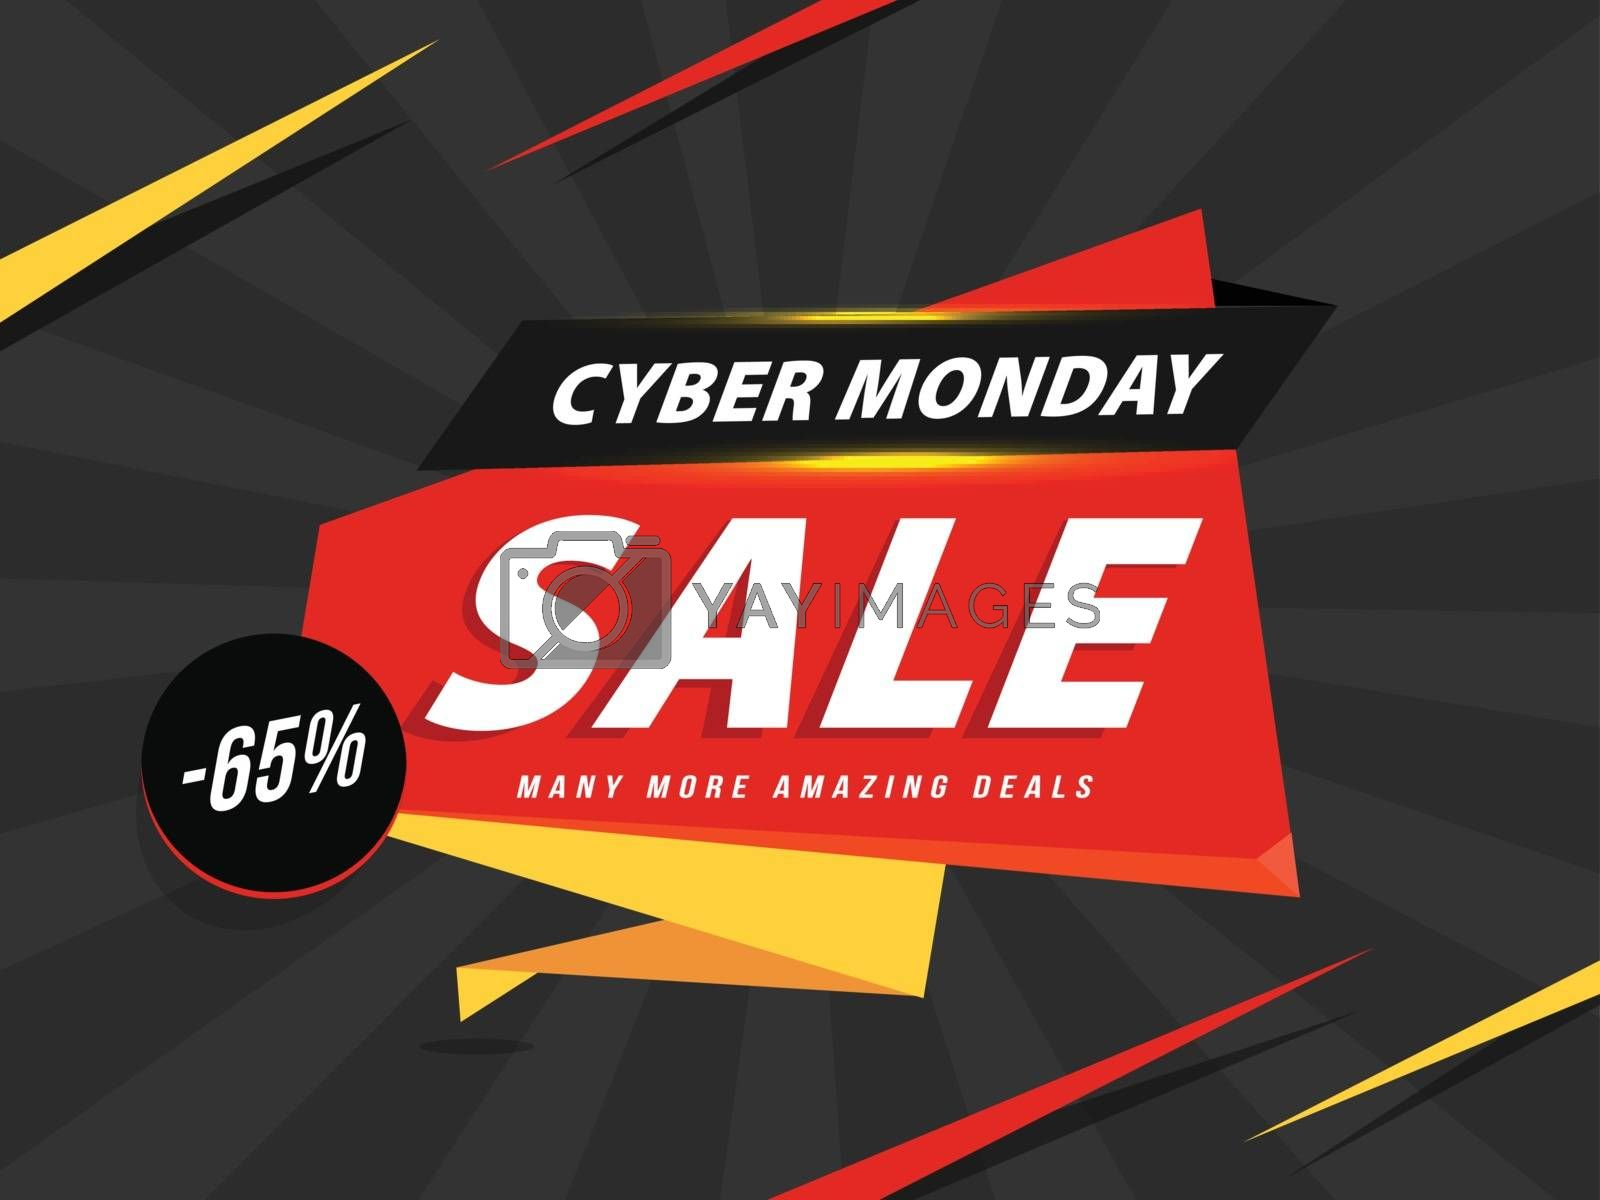 Sale sticker or ribbon with -65% discount offer for Cyber Monday by aispl